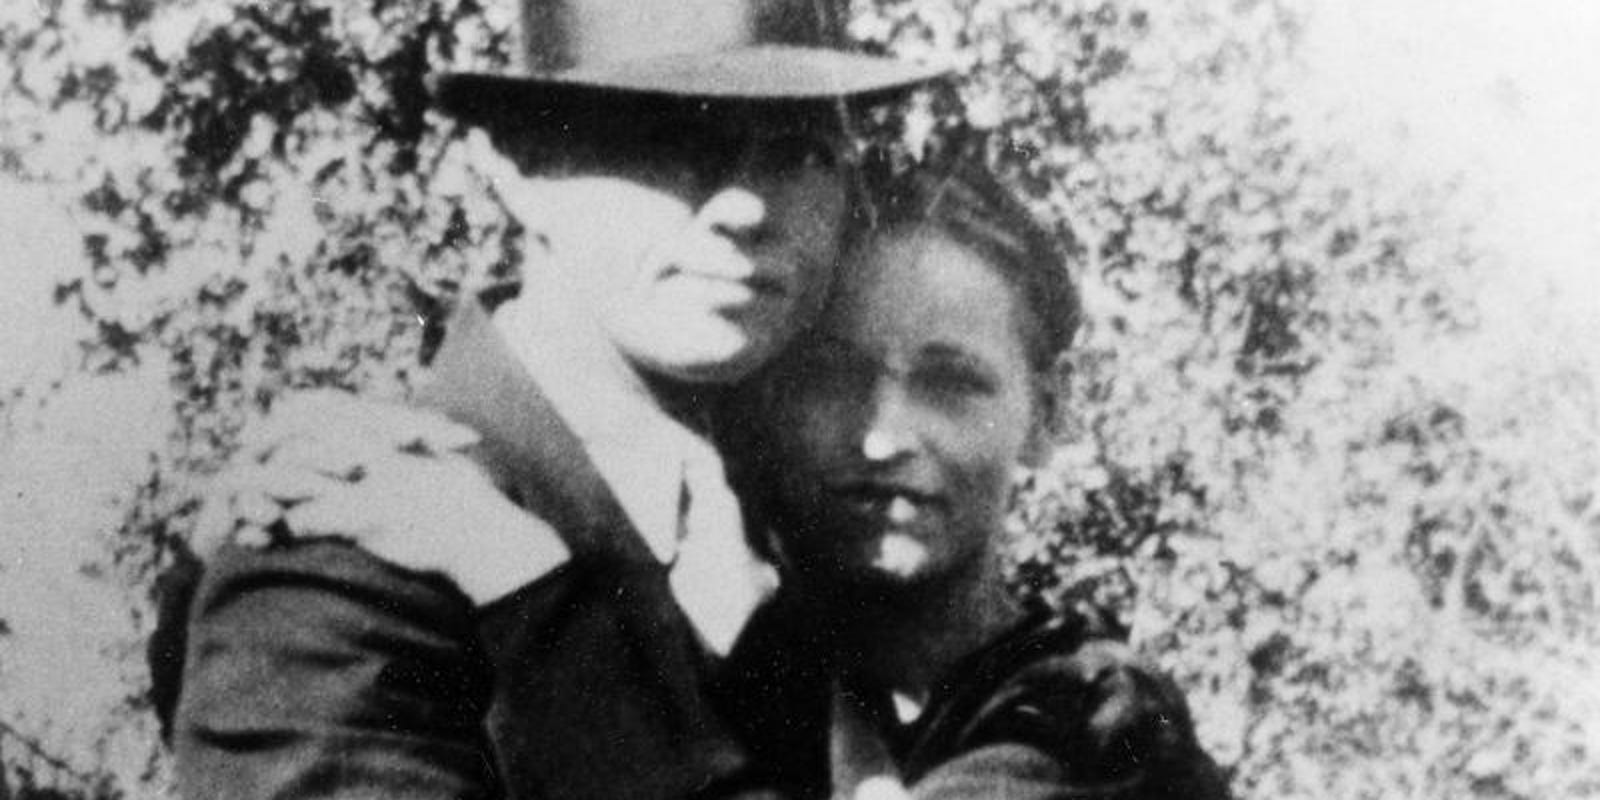 bonnie clyde analysis Bonnie parker and clyde barrow were notorious gangsters during this time beginning in 1932, the rebellious couple began a 21-month crime spree while traveling throughout the southwest and midwest.